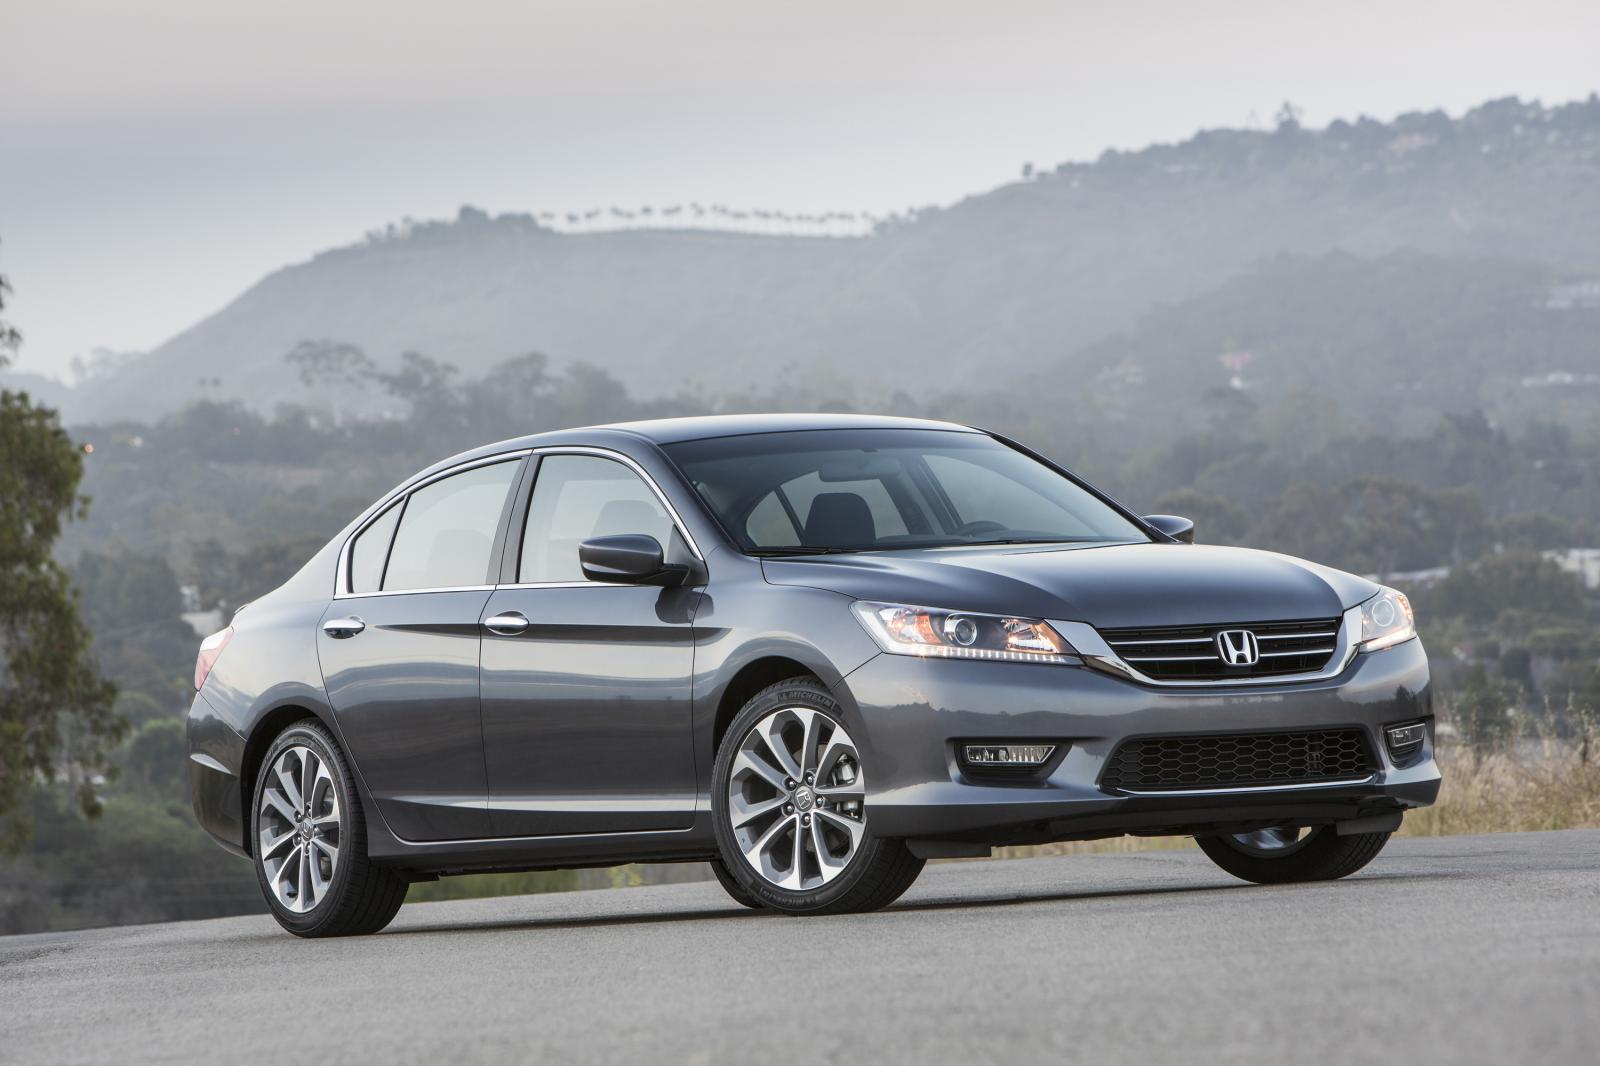 2014 honda accord unveiled autoevolution. Black Bedroom Furniture Sets. Home Design Ideas